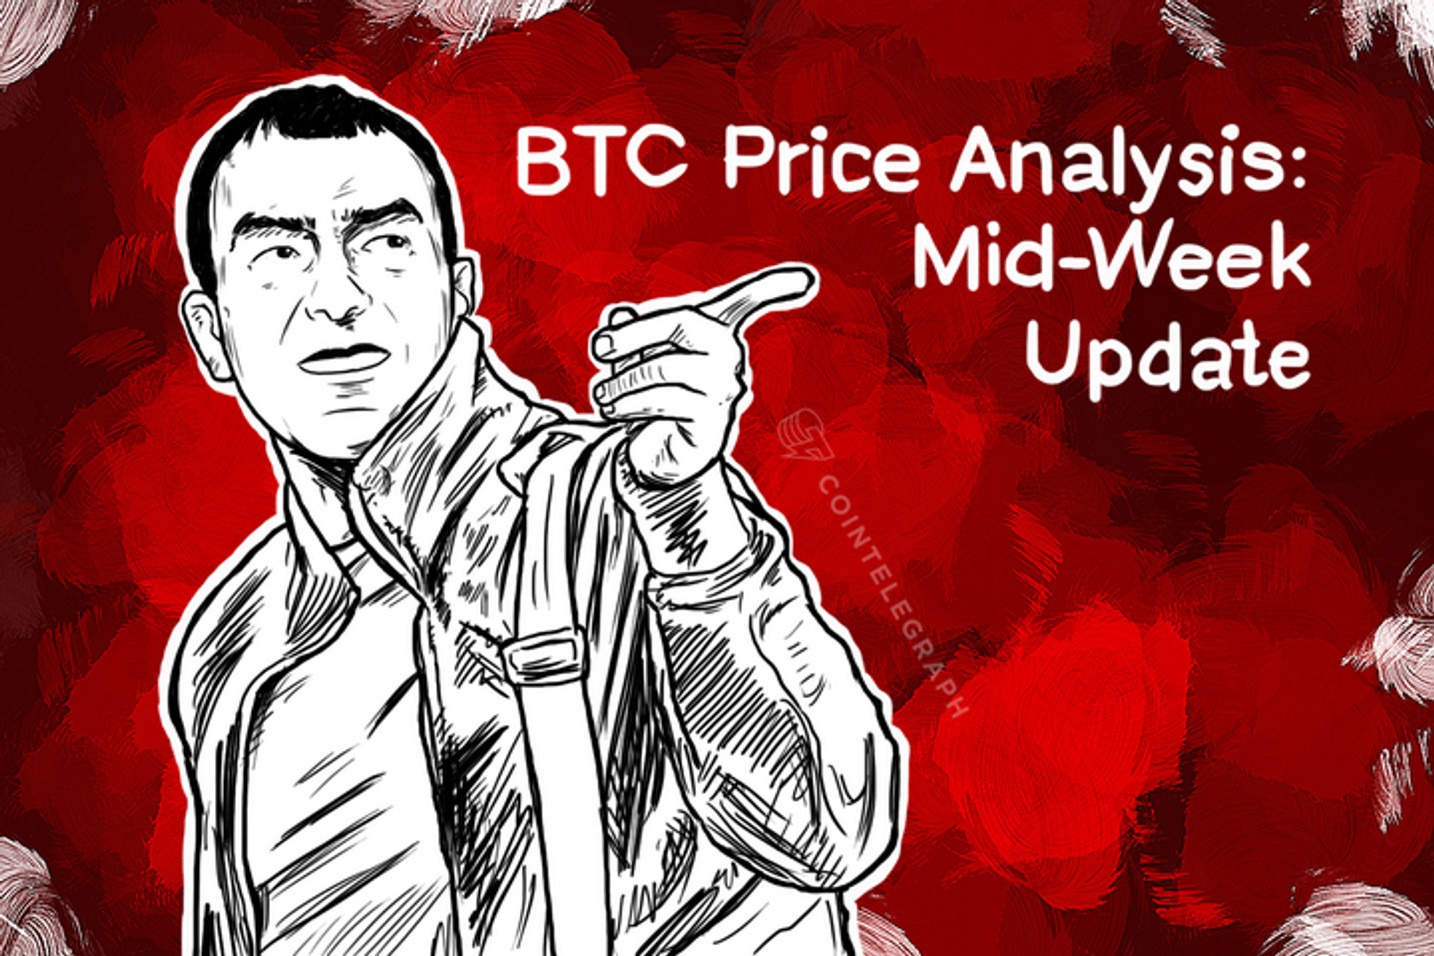 BTC Price Analysis: Mid-Week Update